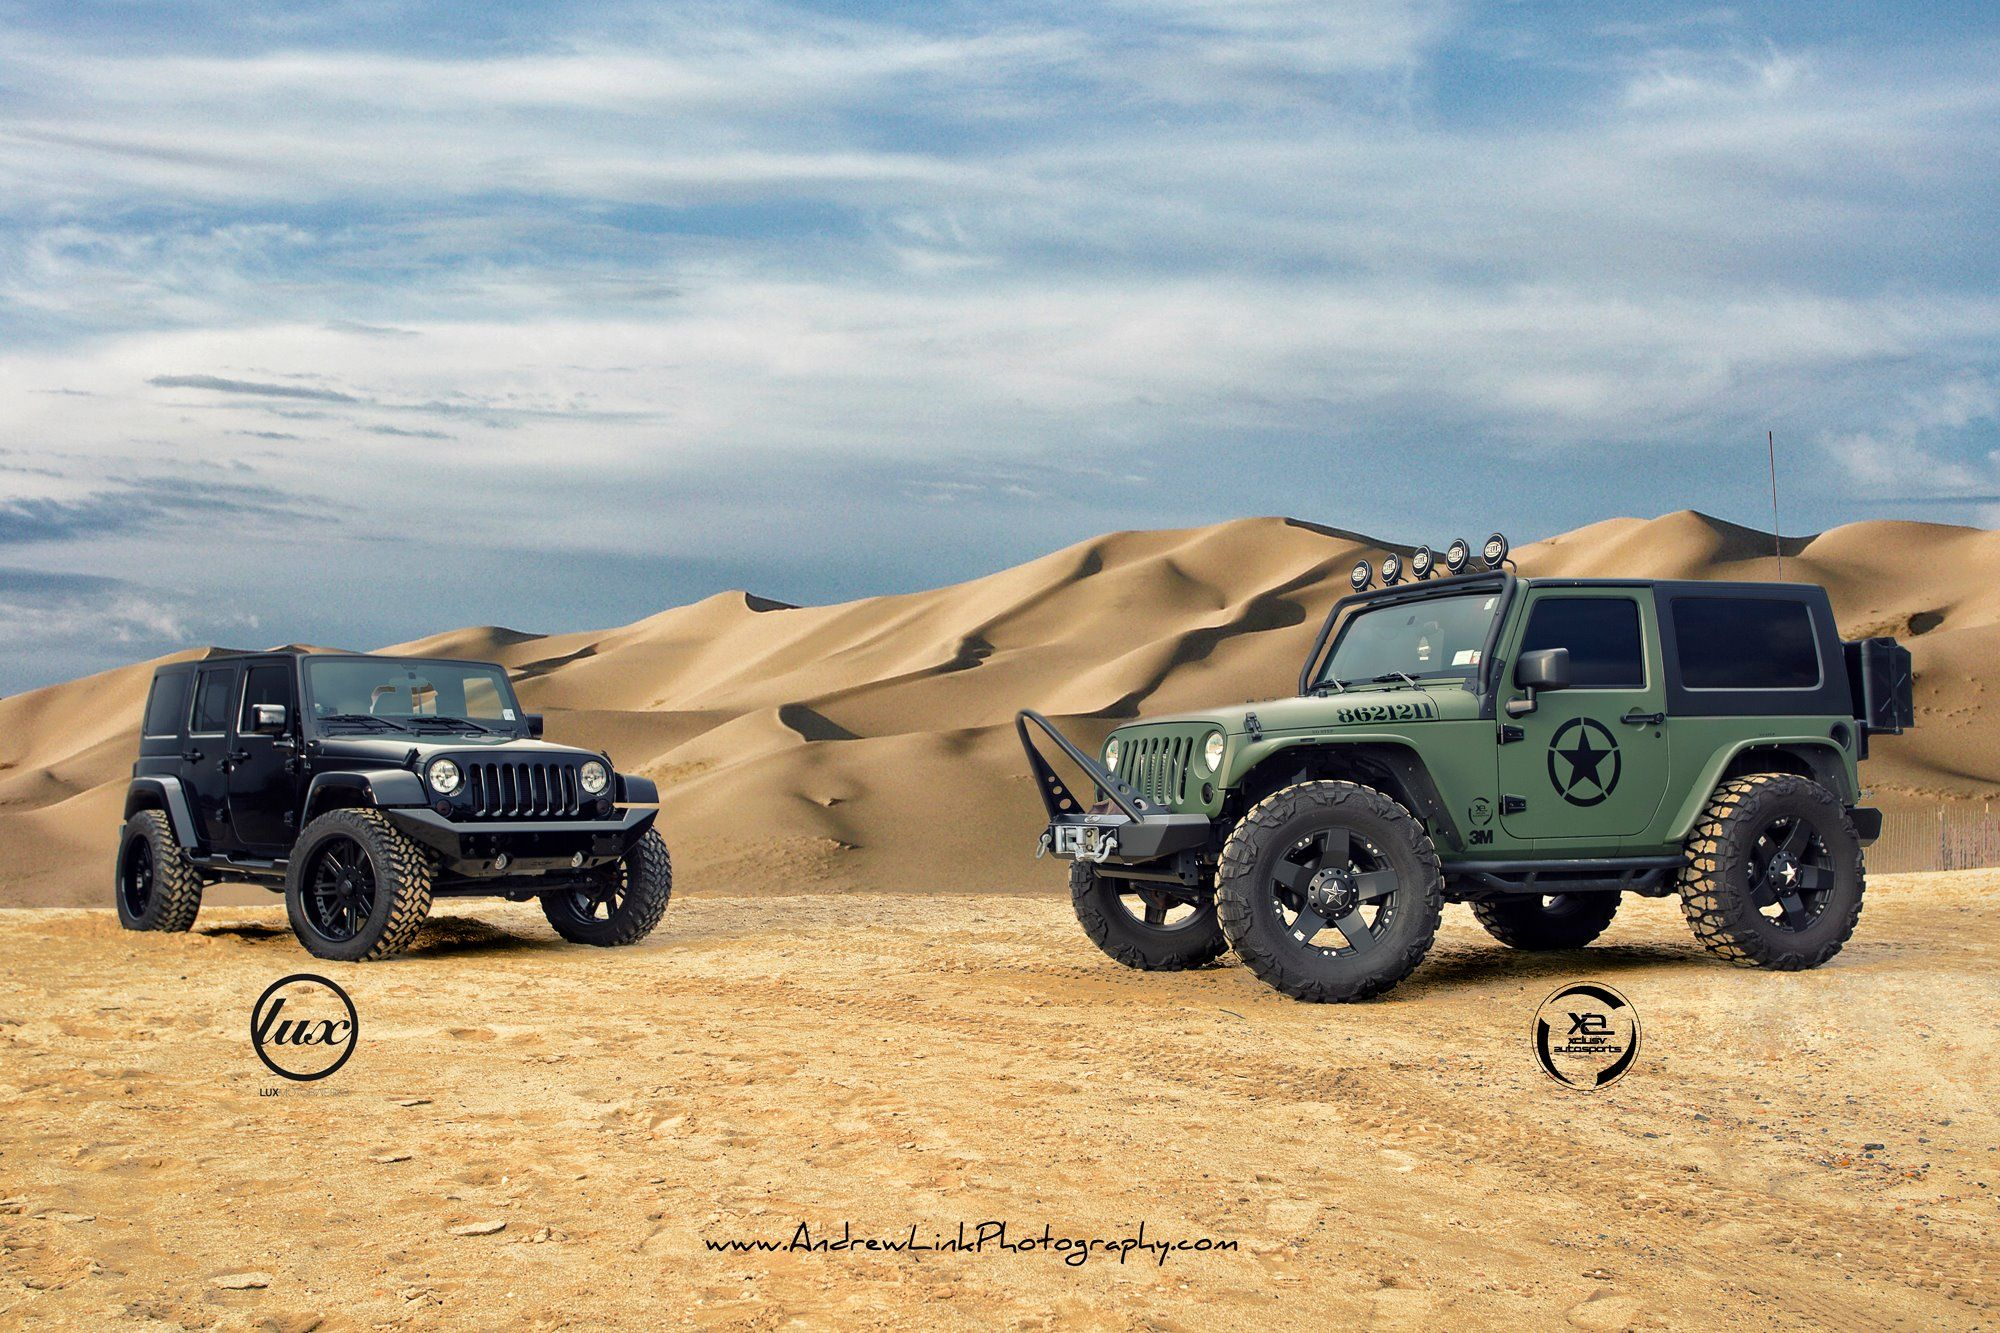 get one for me (With images) Jeep, Green jeep, Lifted jeep